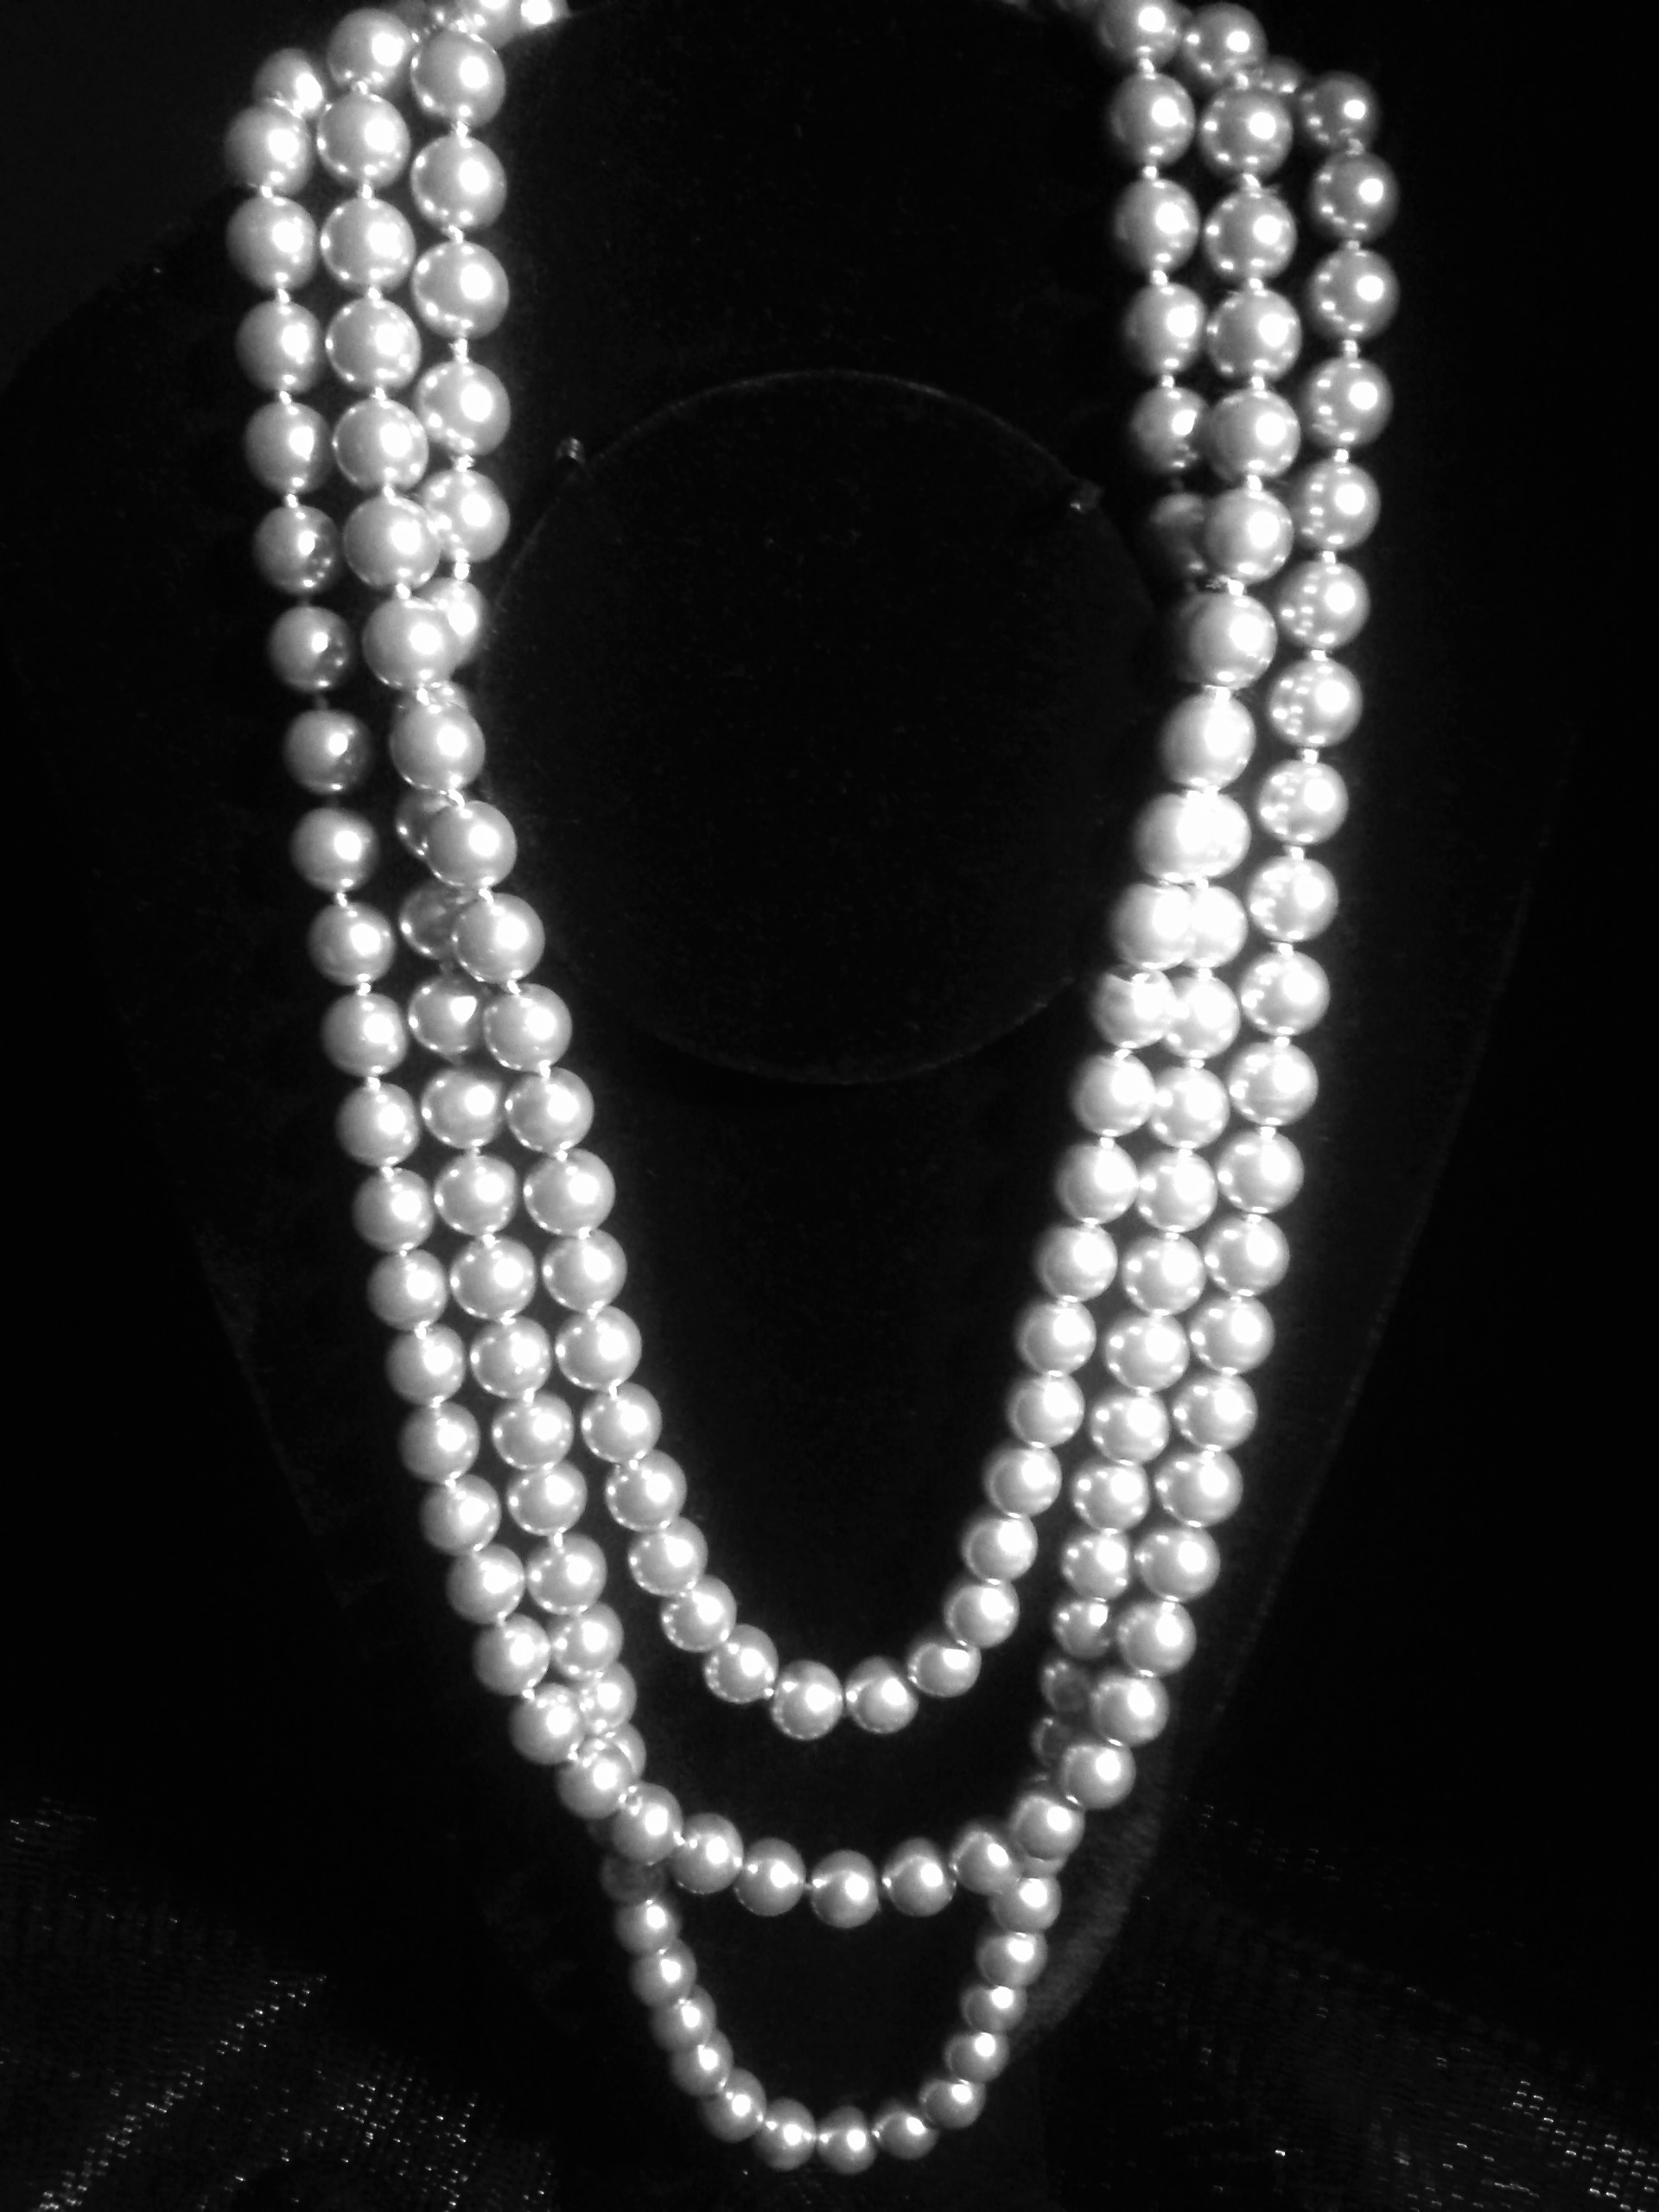 Shown Wrapped Multiple Times For The Multistrand Effect The Necklace Can  Be Worn Unwrapped For The Look Of An Extra Long Single Strand Pearl Necklace